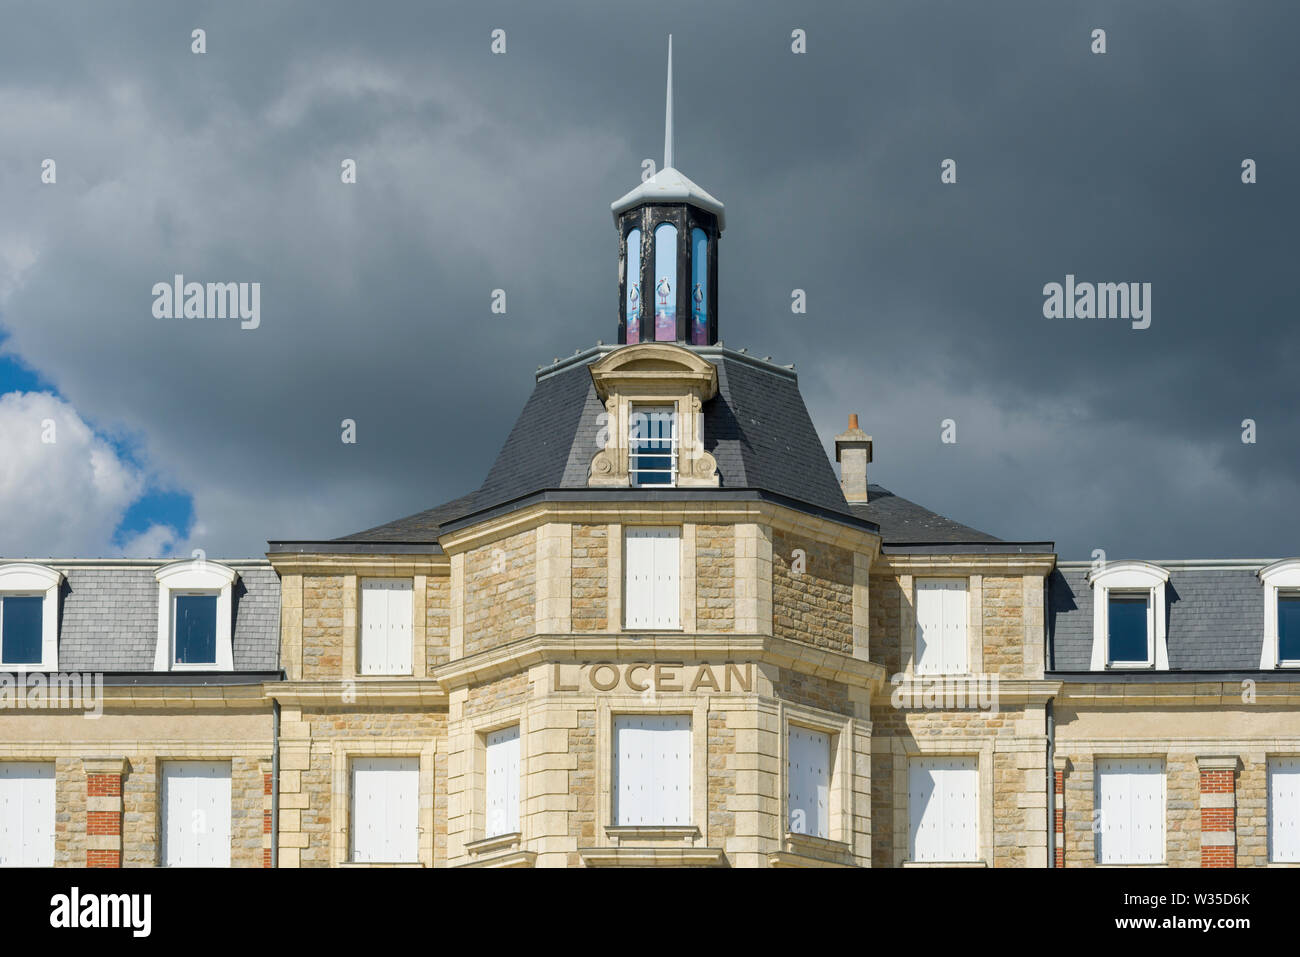 the former hotel L'Océan, in granite, brick and wood, always watches over the beach of the Booksellers for nearly 150 years in Pornichet, France - Stock Image